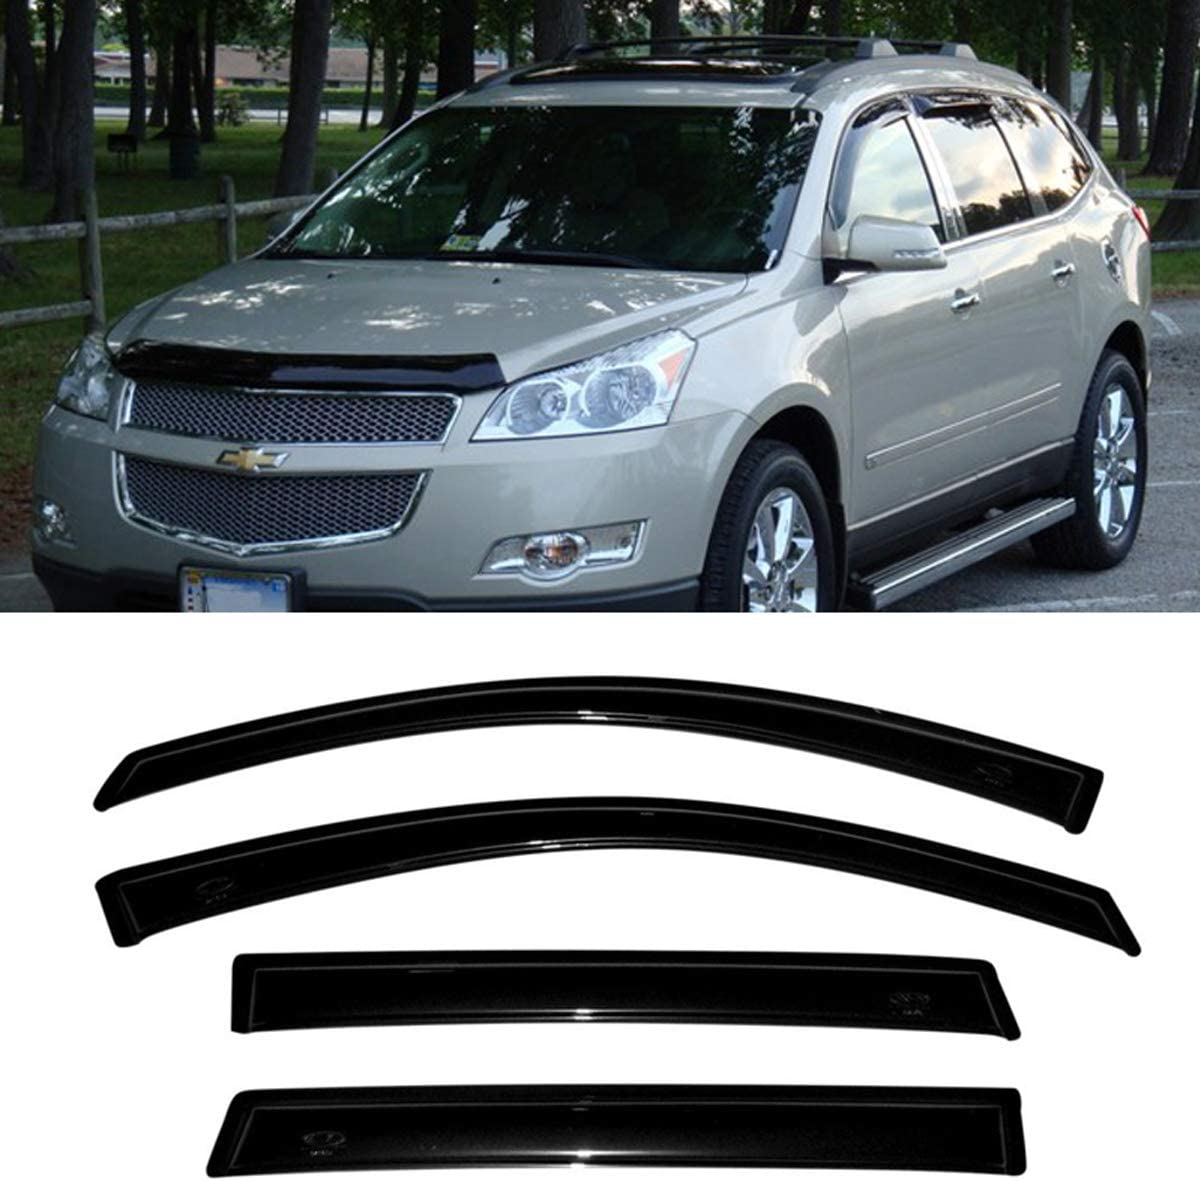 US-Visors 2009-2017 Chevy Traverse In-Channel Window Vent Visors Rain Guards